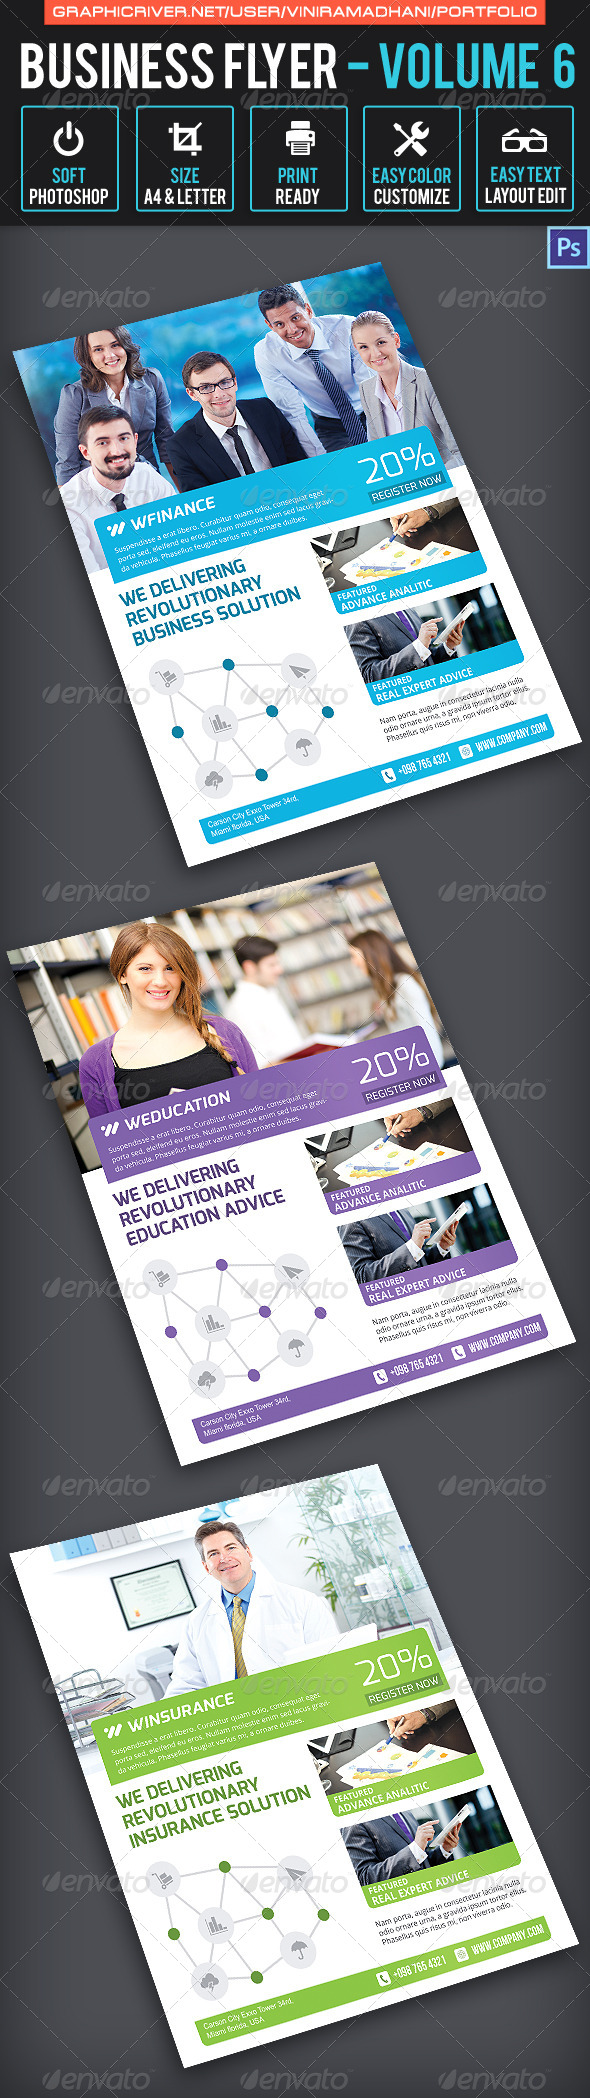 GraphicRiver Business Flyer Volume 6 6539825